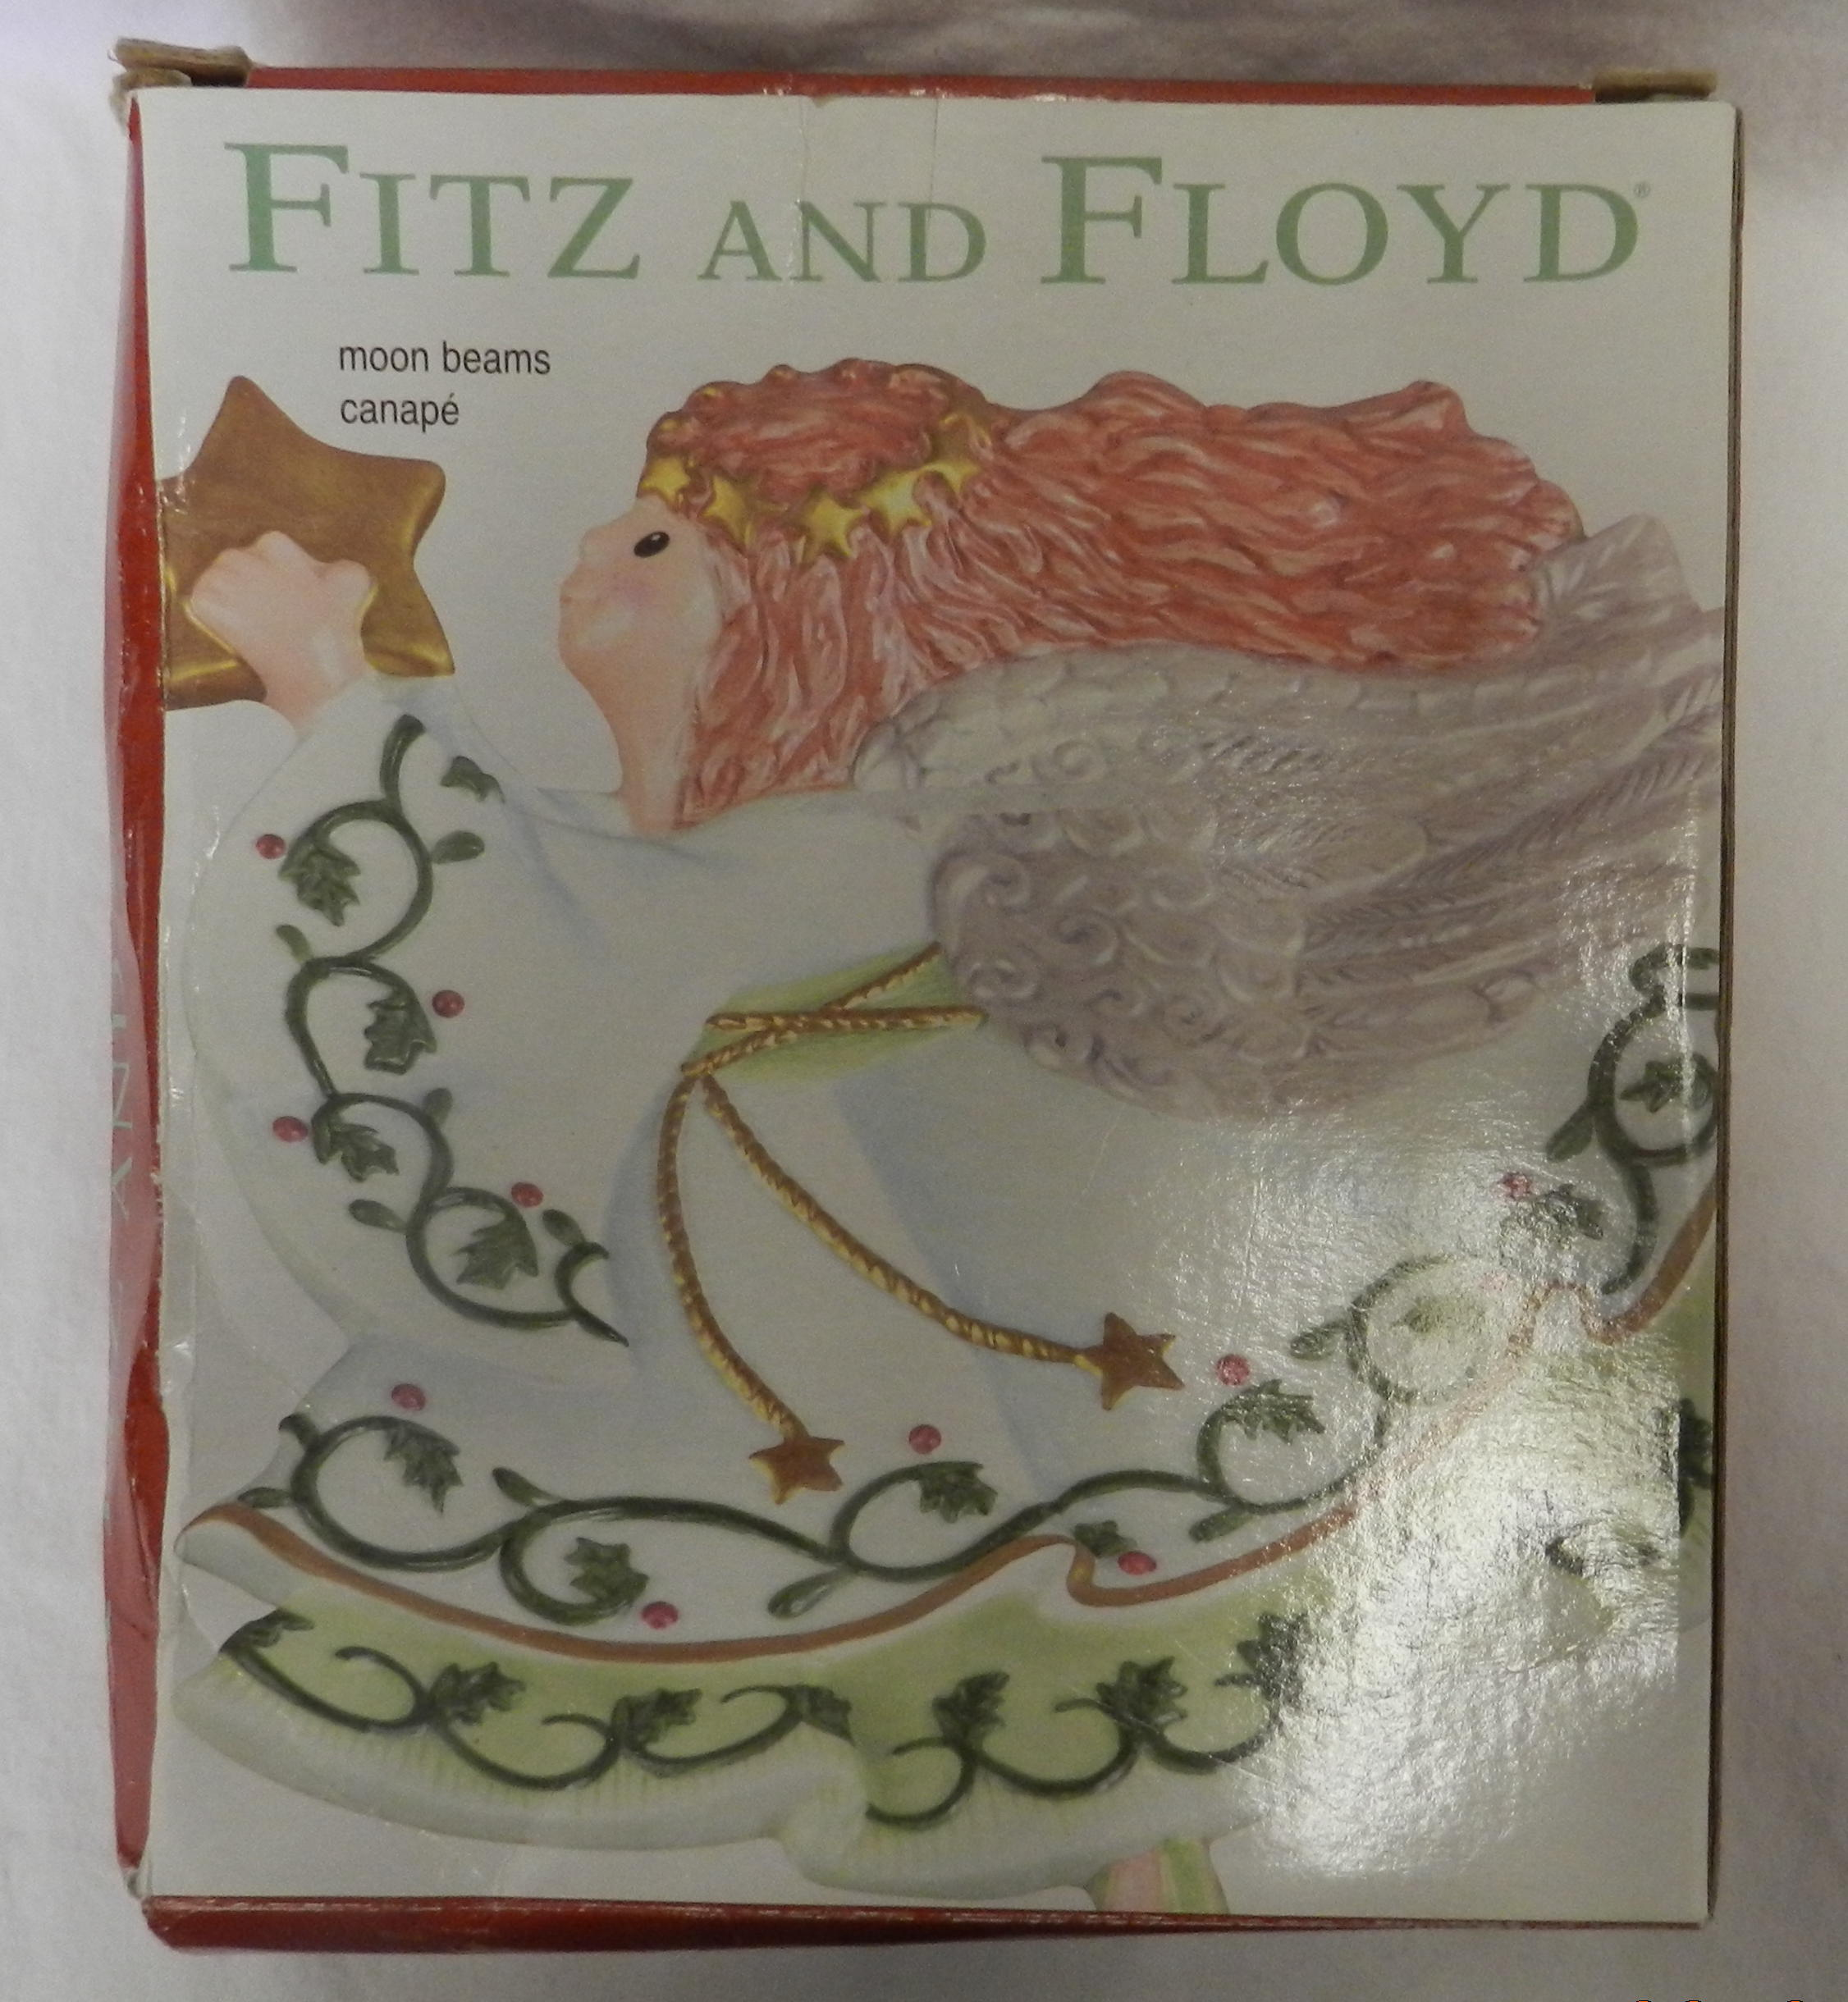 Fitz and floyd christmas moon beams angel star canape for Fitz and floyd canape plate